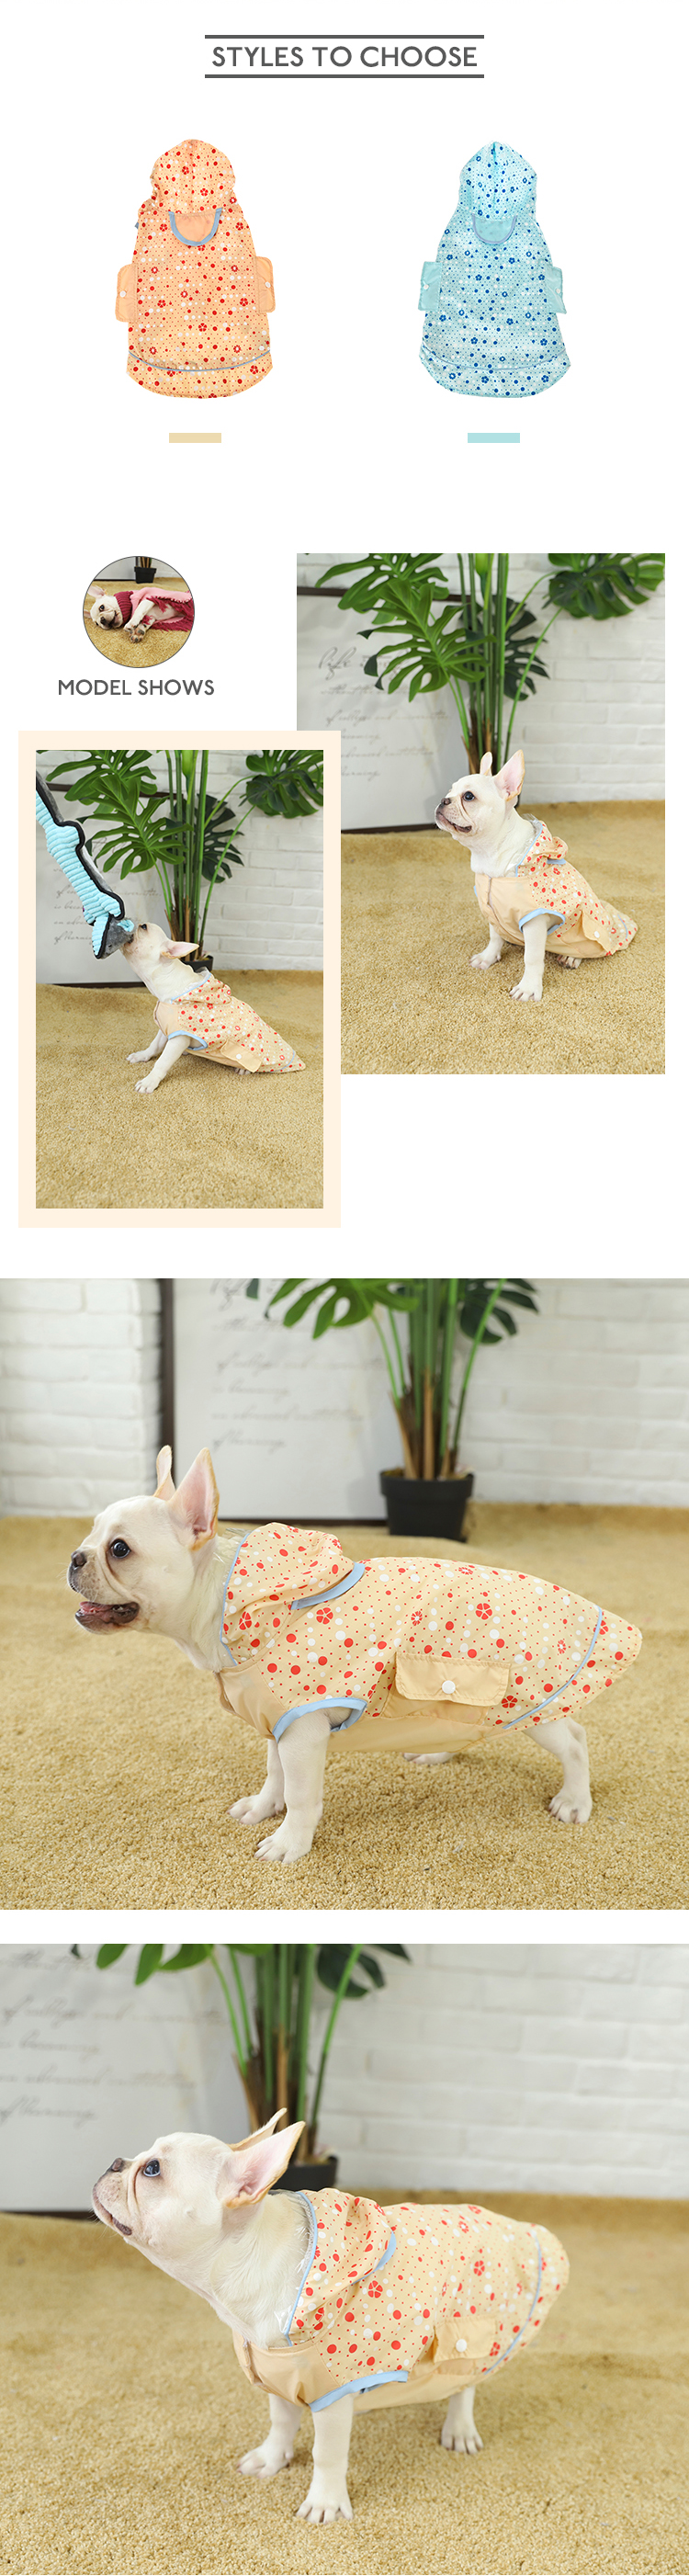 Pink Tianyuan Full Cover Raincoat Large Dog Clothes,Dog Clothes Summer Raincoat